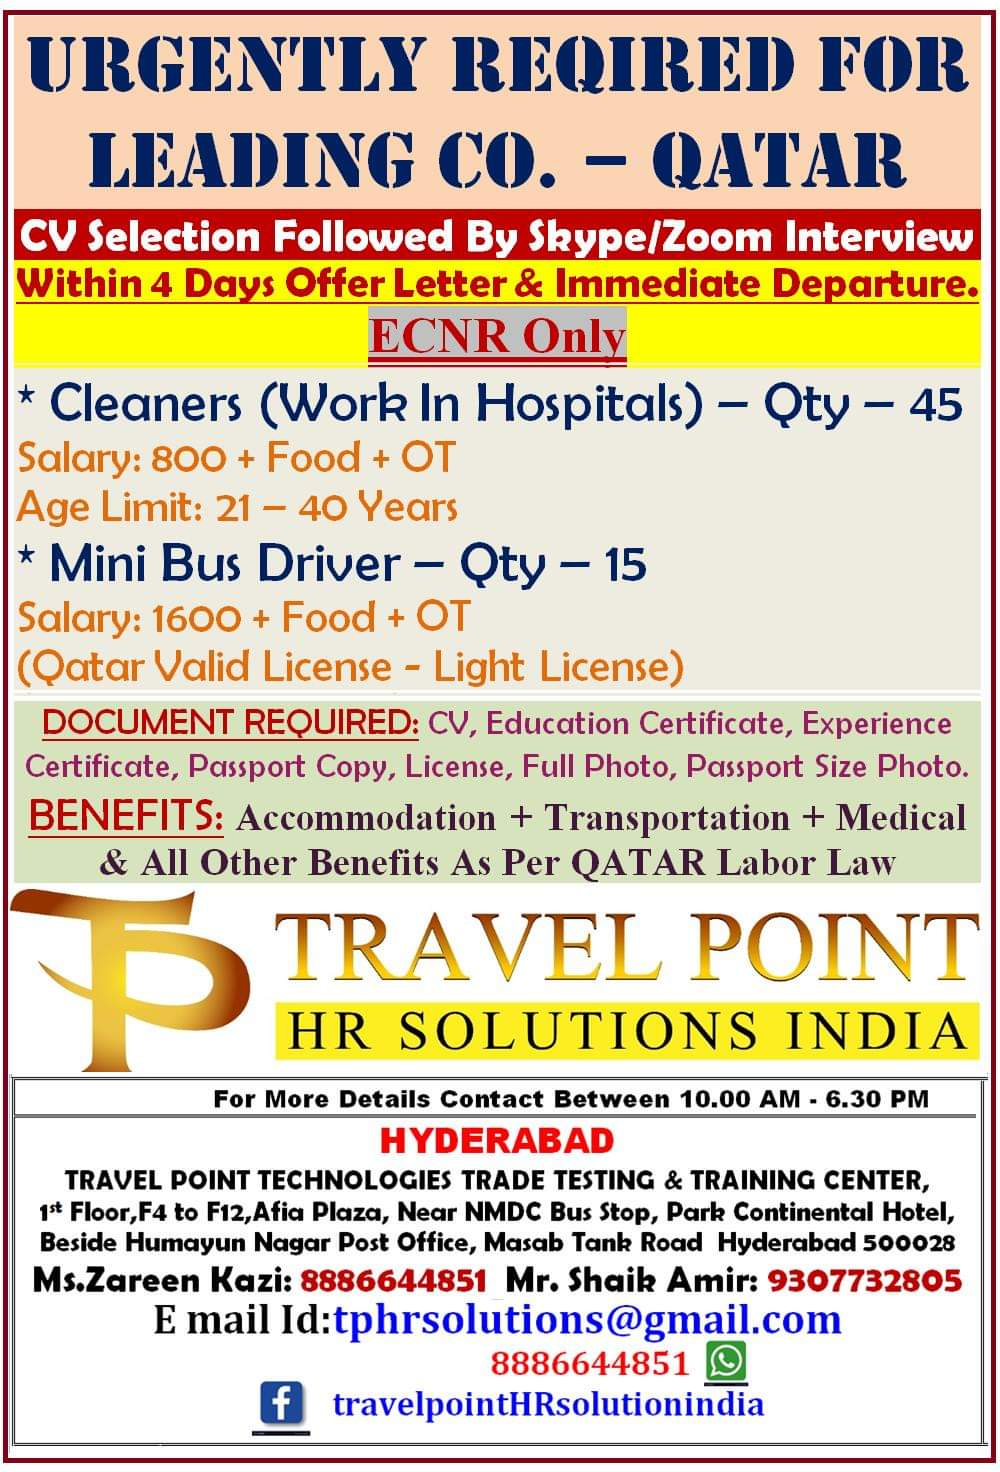 URGENTLY REQUIRED FOR LEADING COMPANY QATAR